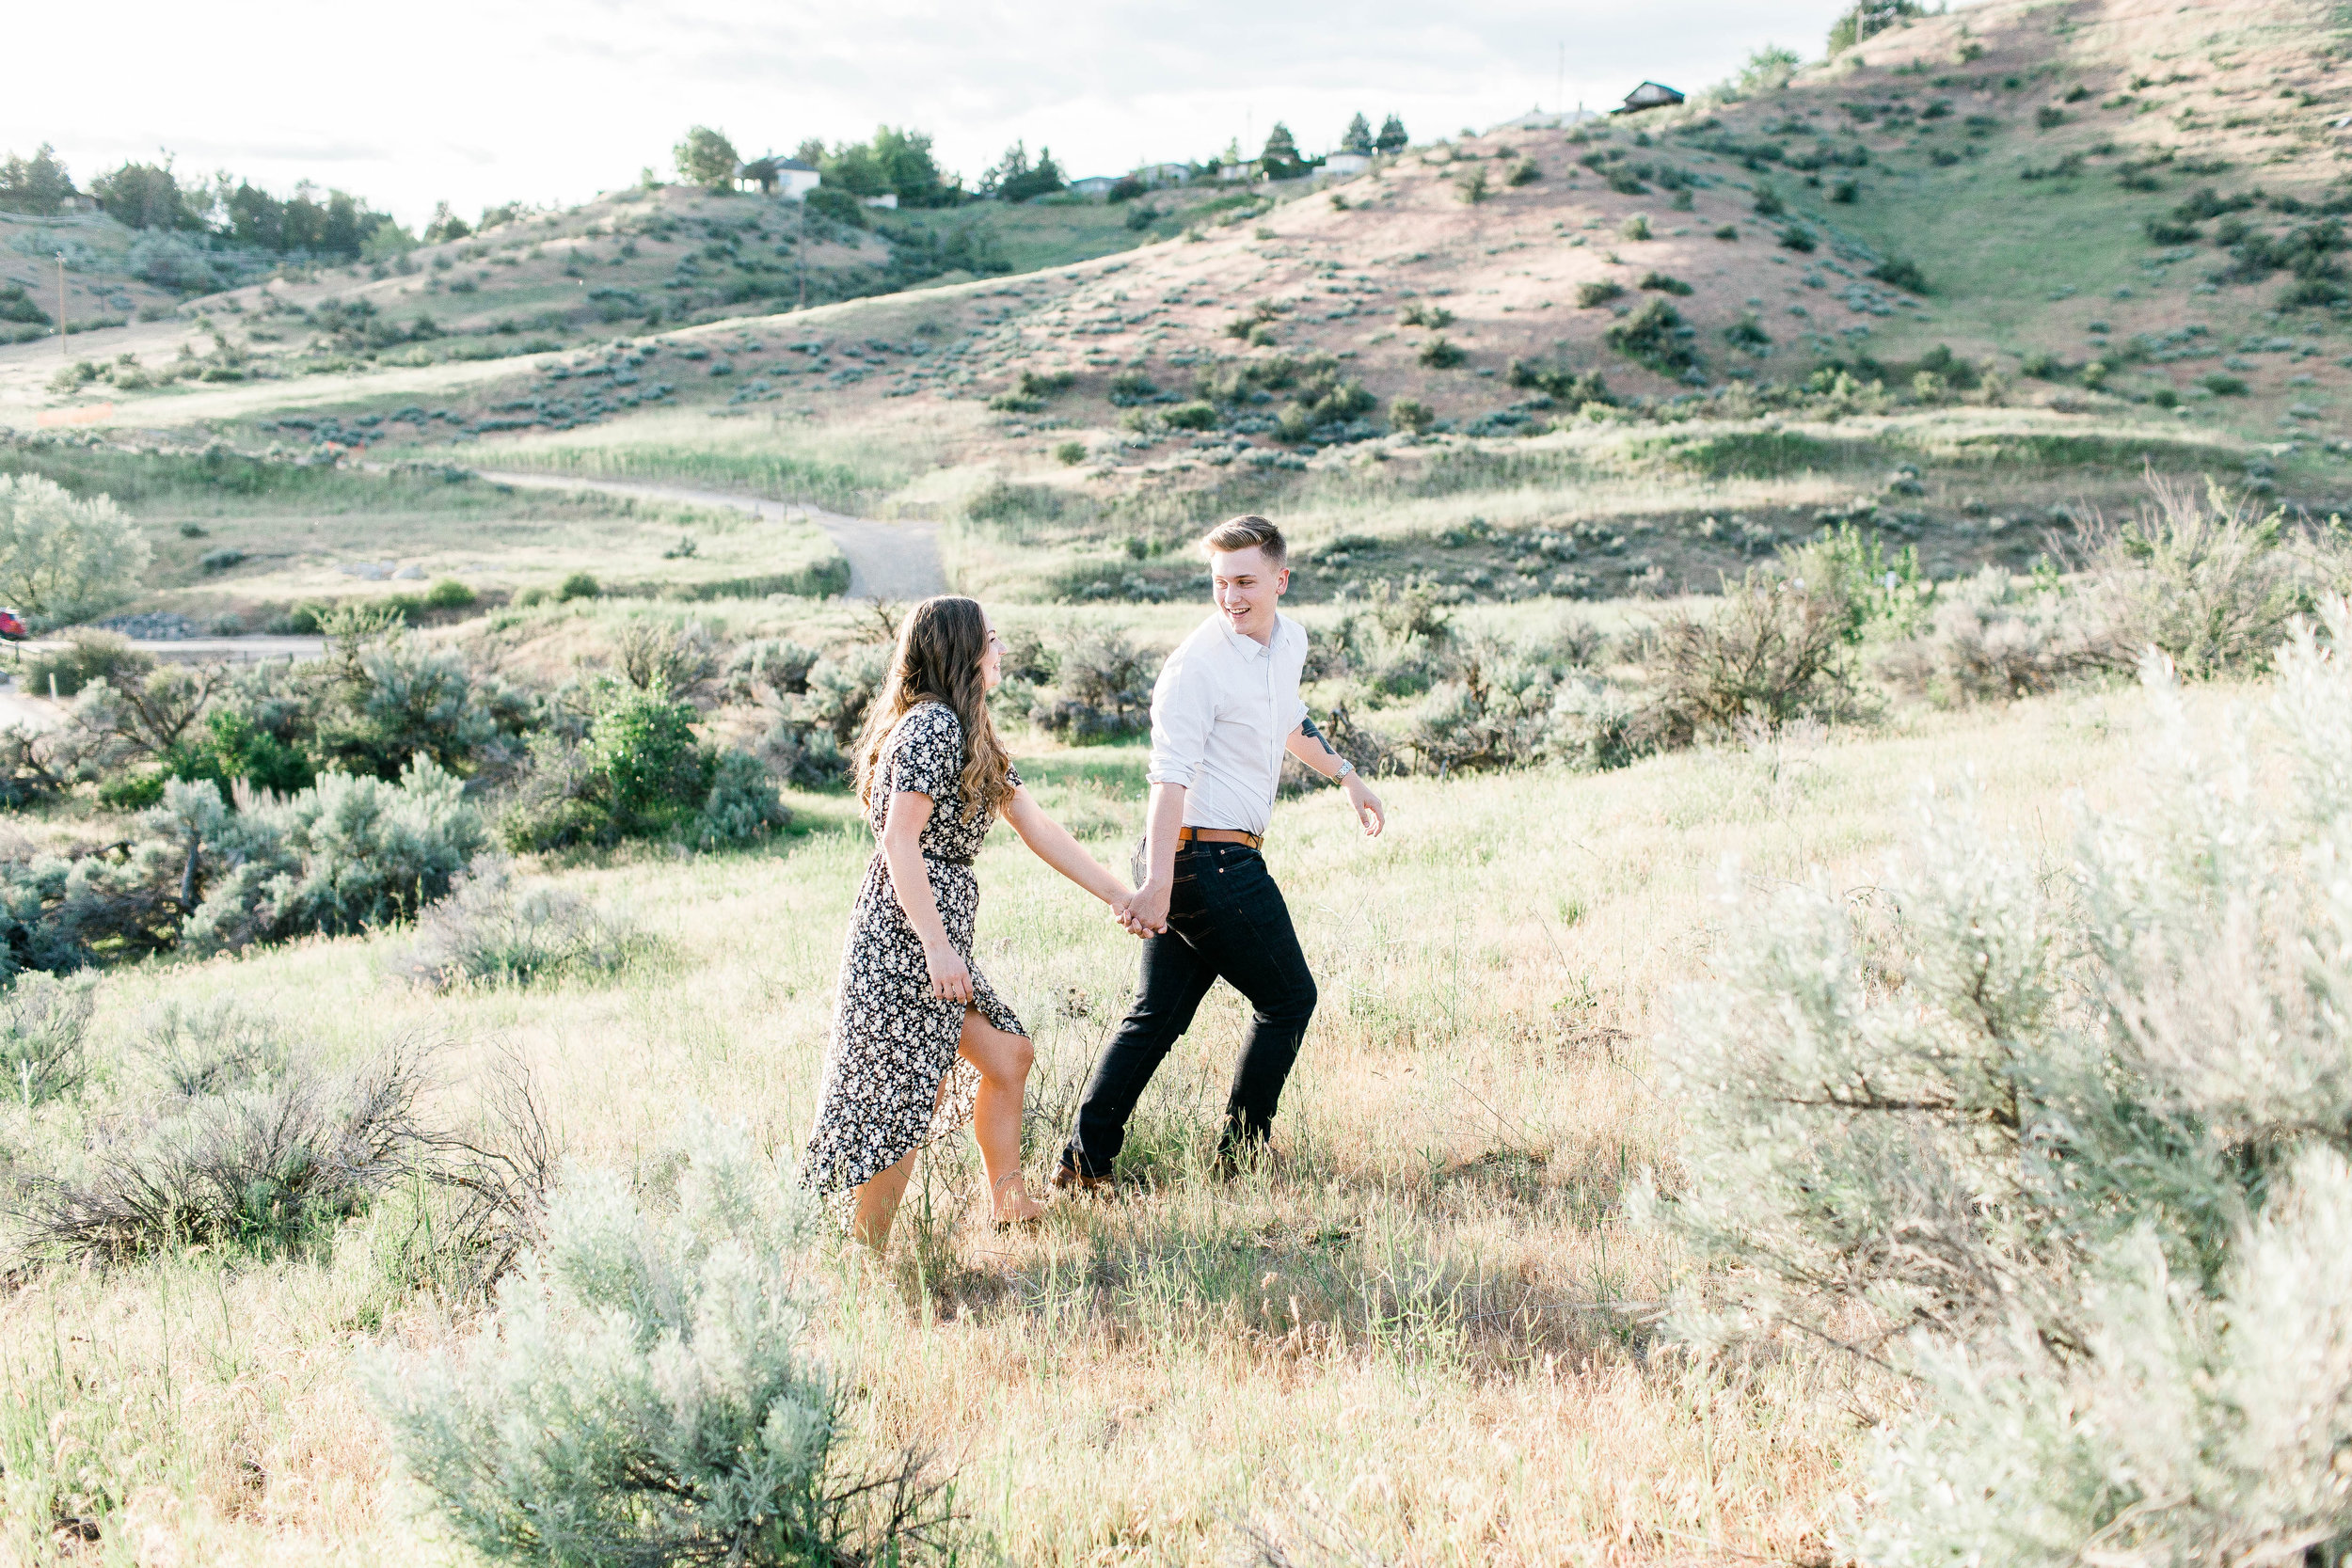 Kole-Danielle-Boise-Foothills-Summer-Engagement-Session-56.jpg